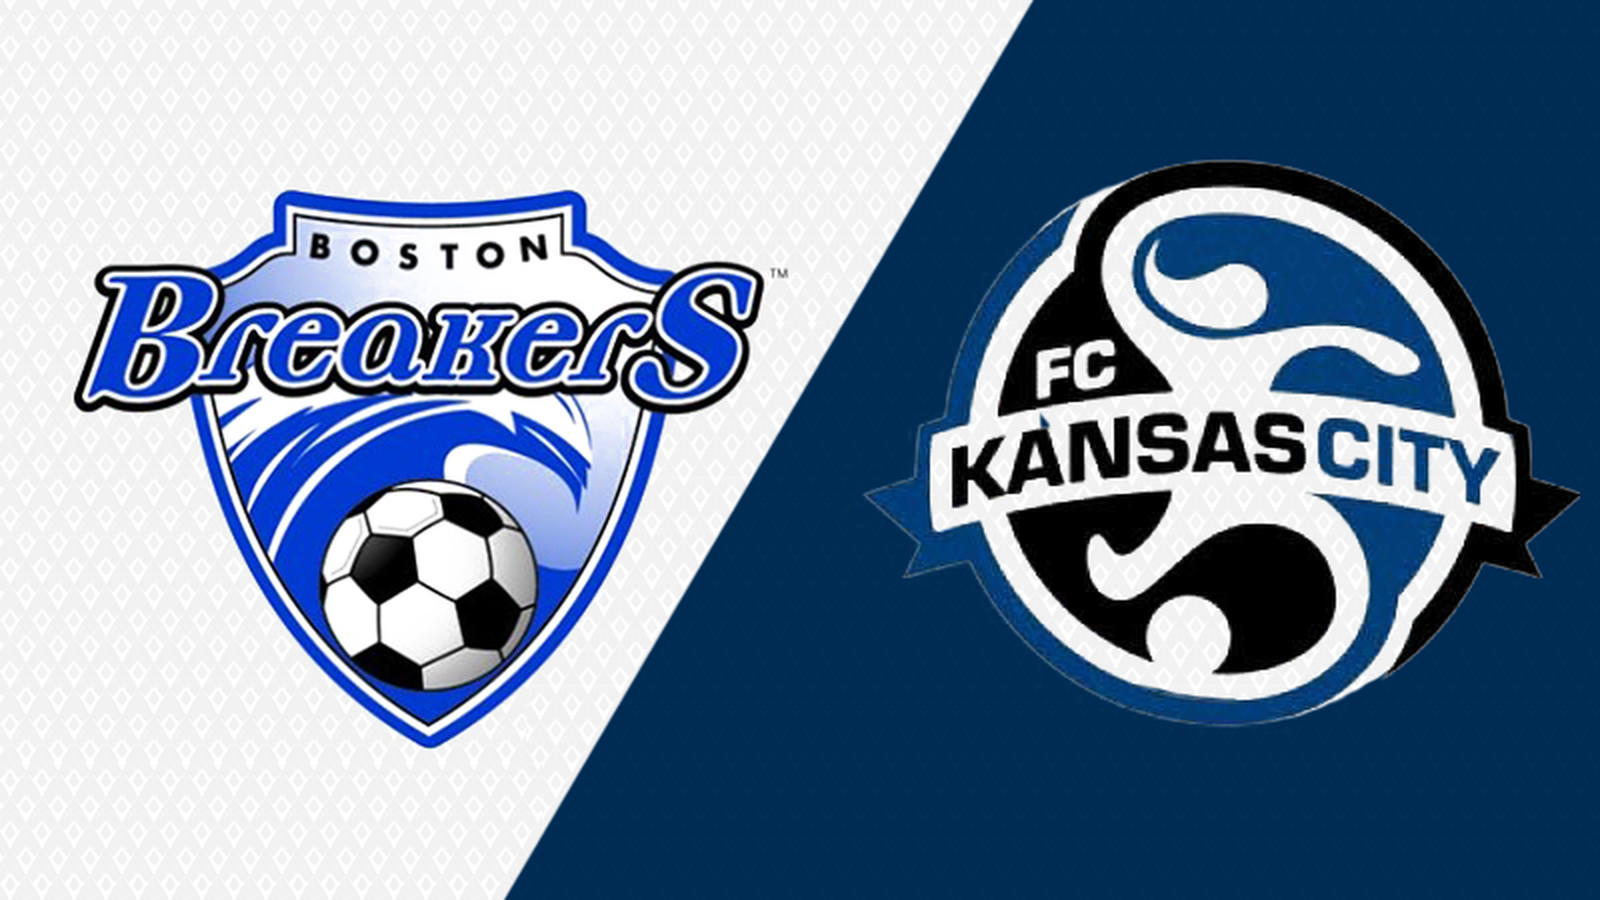 Breakers_vs_fckc.0.0